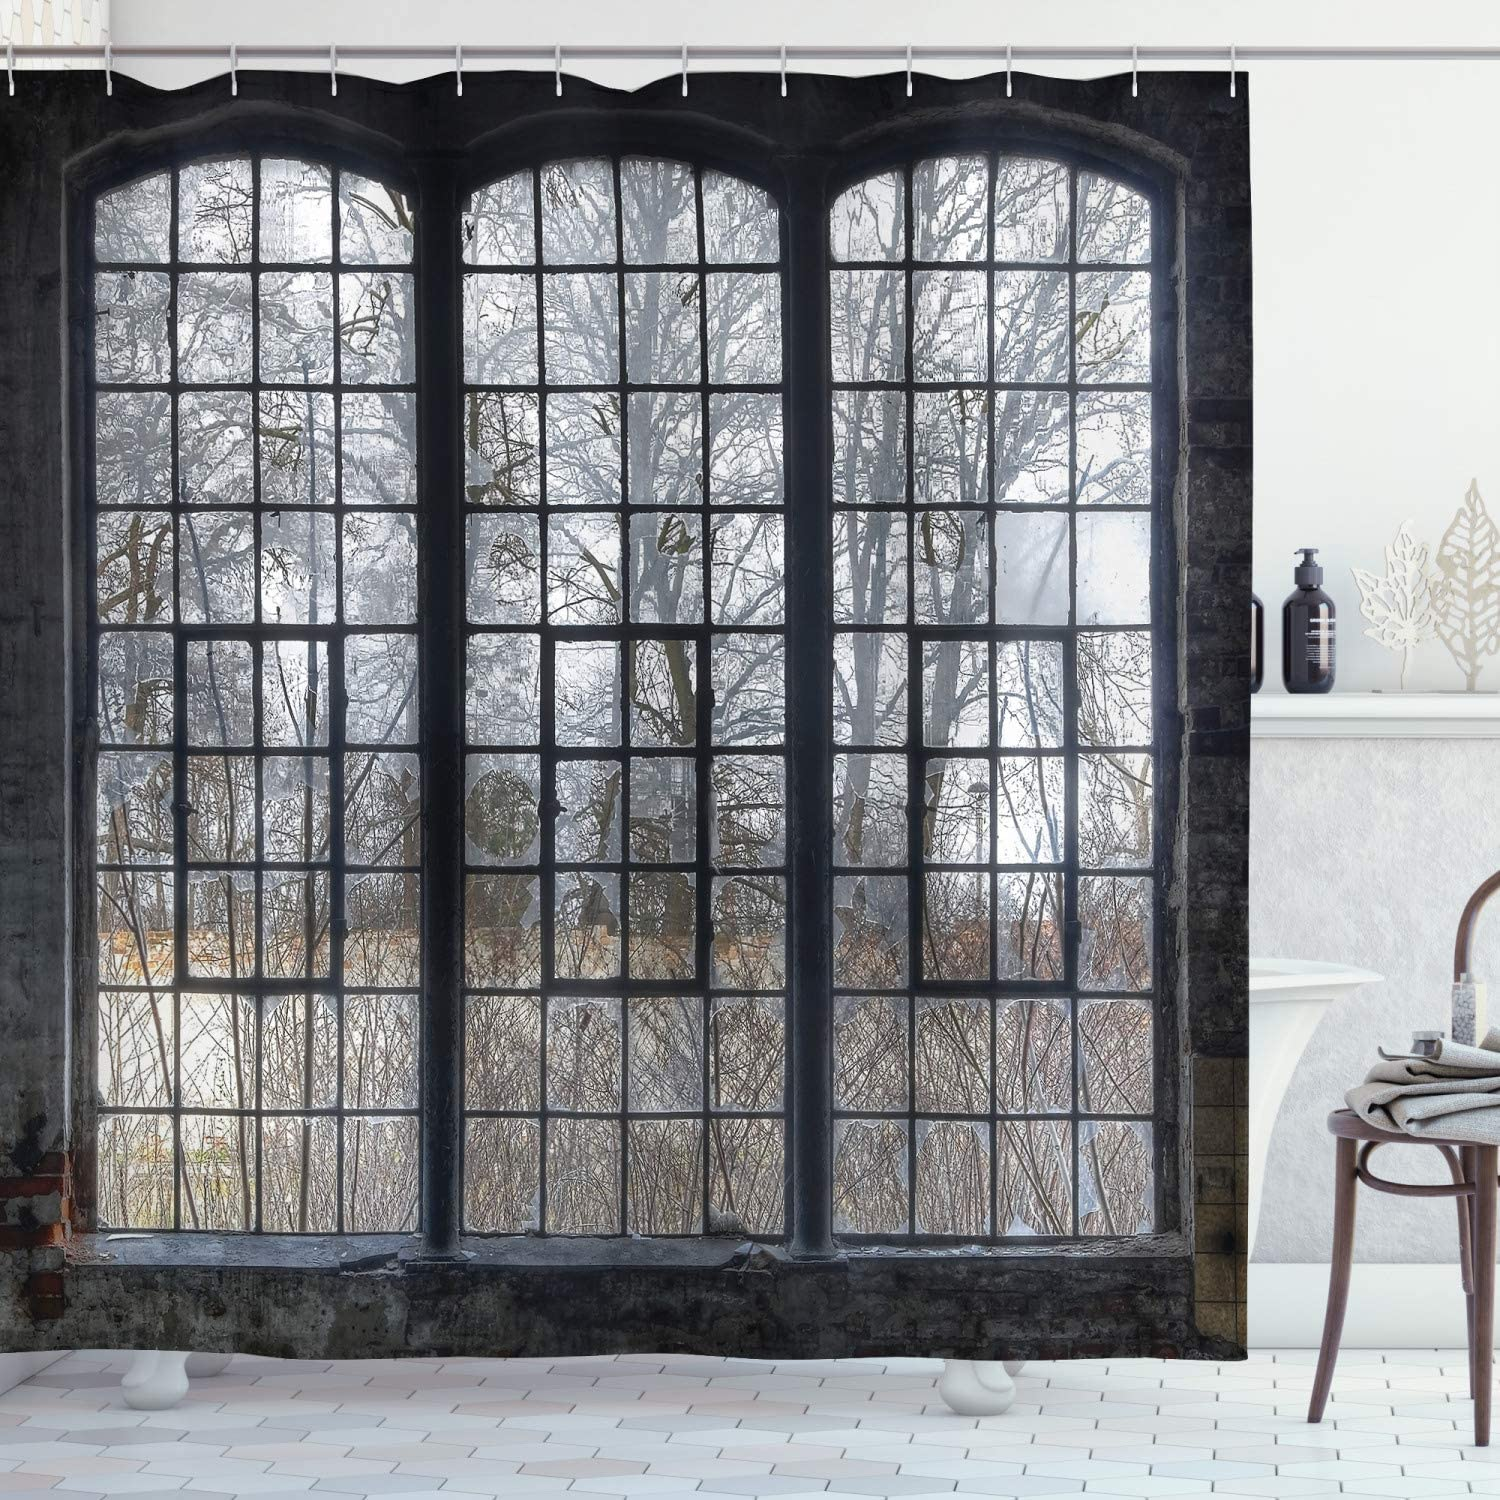 industrial shower curtain old large window with broken panes deserted hall forest trees winter bathroom decor set with hooks 84